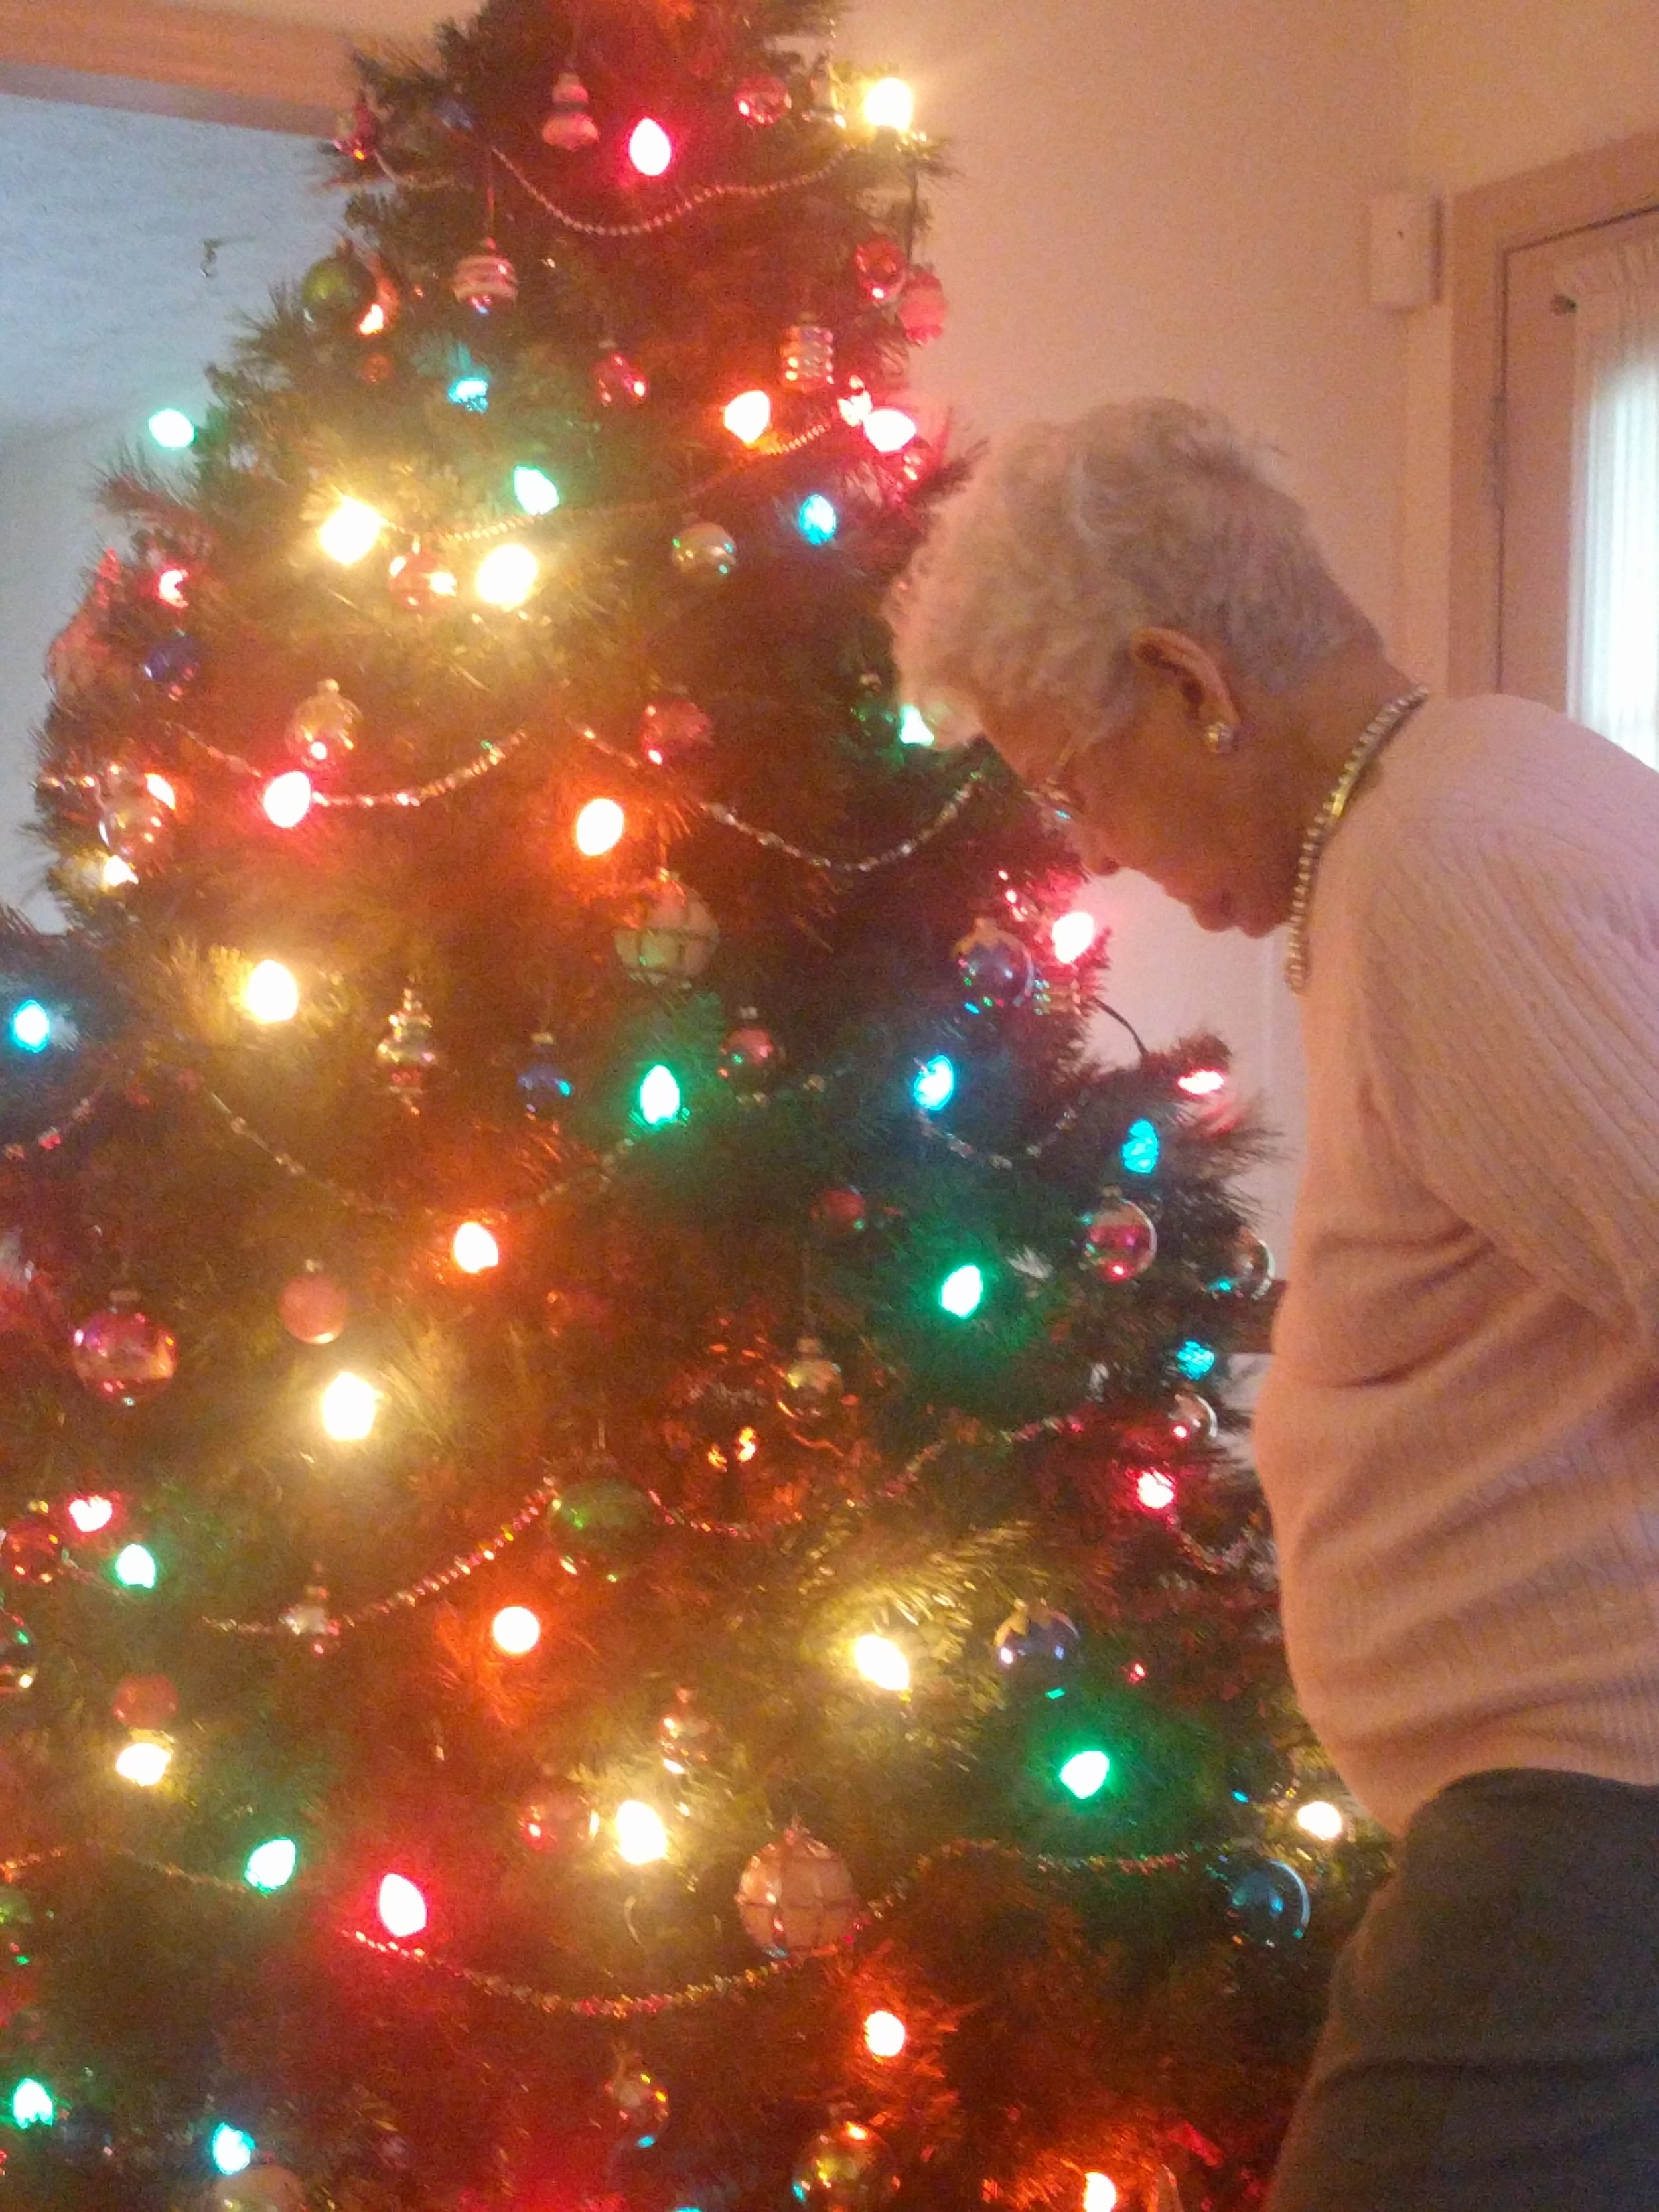 Grandmom admiring Momma's vintage tree. It's decorated with family ornaments from days gone by.